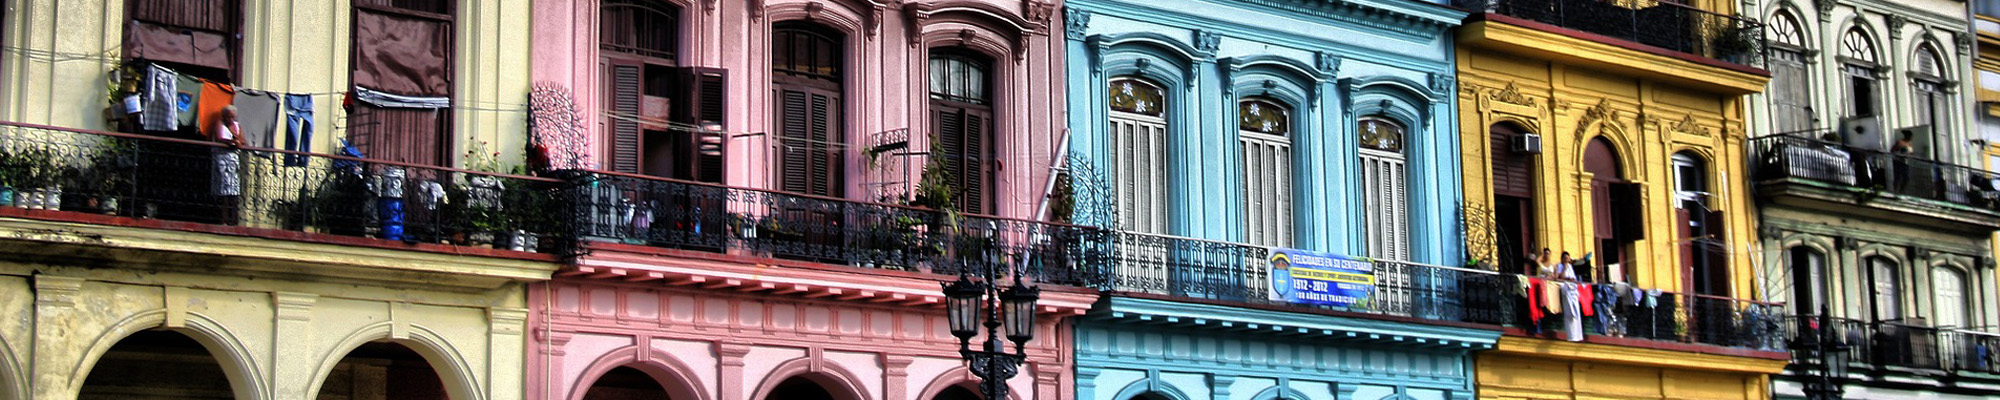 balconies of colorful buildings in cuba